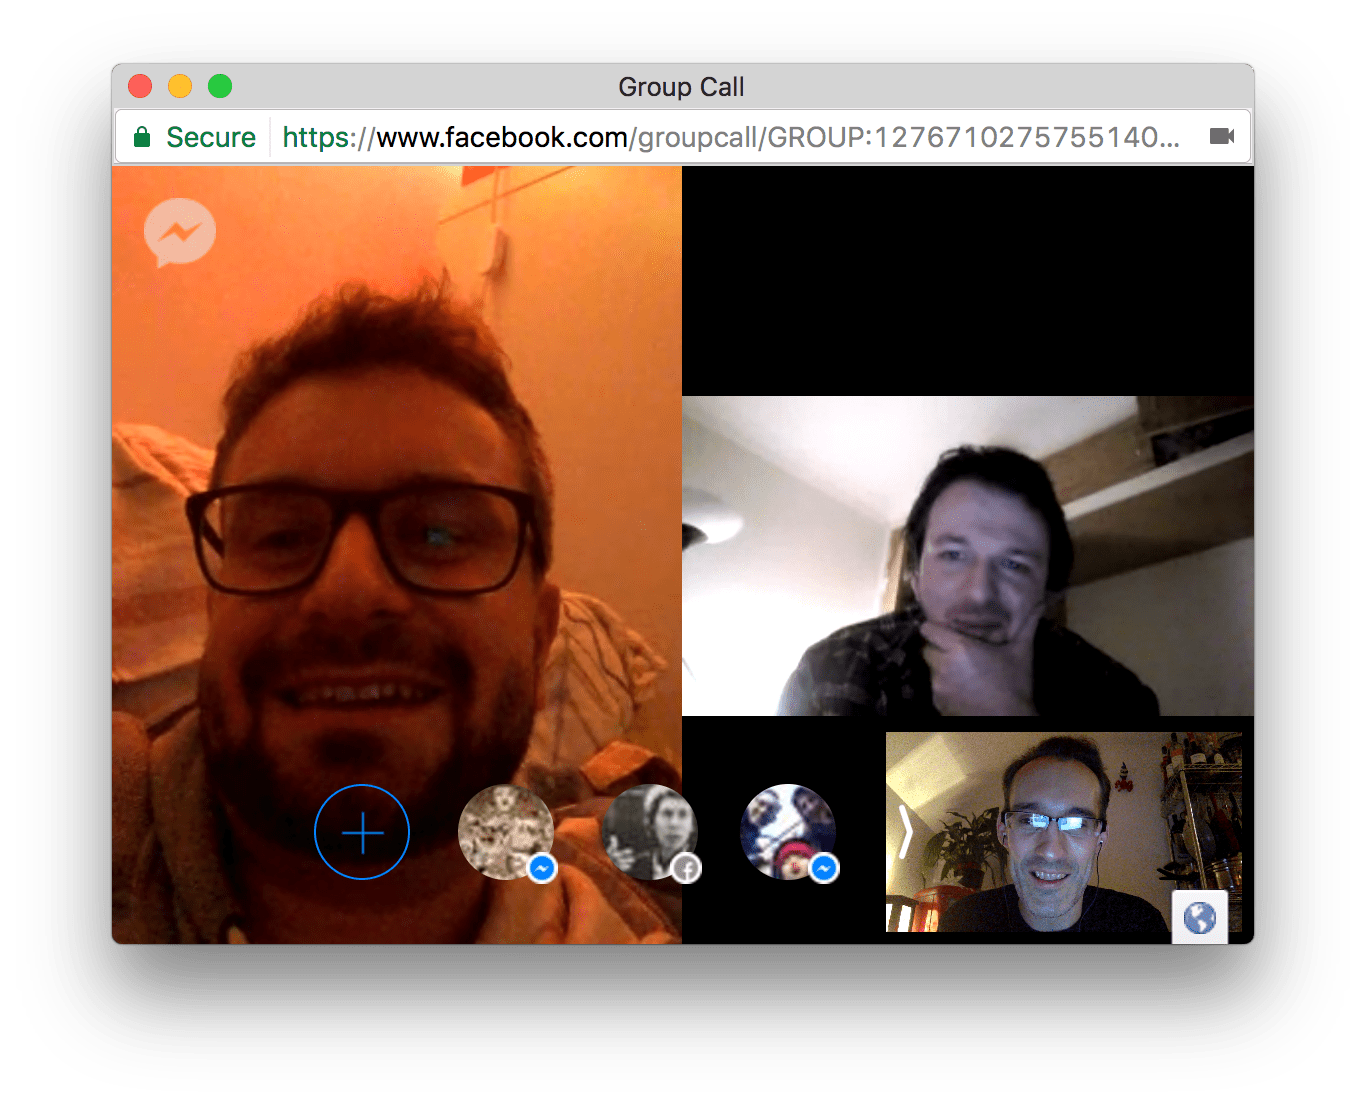 5am Music Club: Accelerate your band communication #2 with video chat